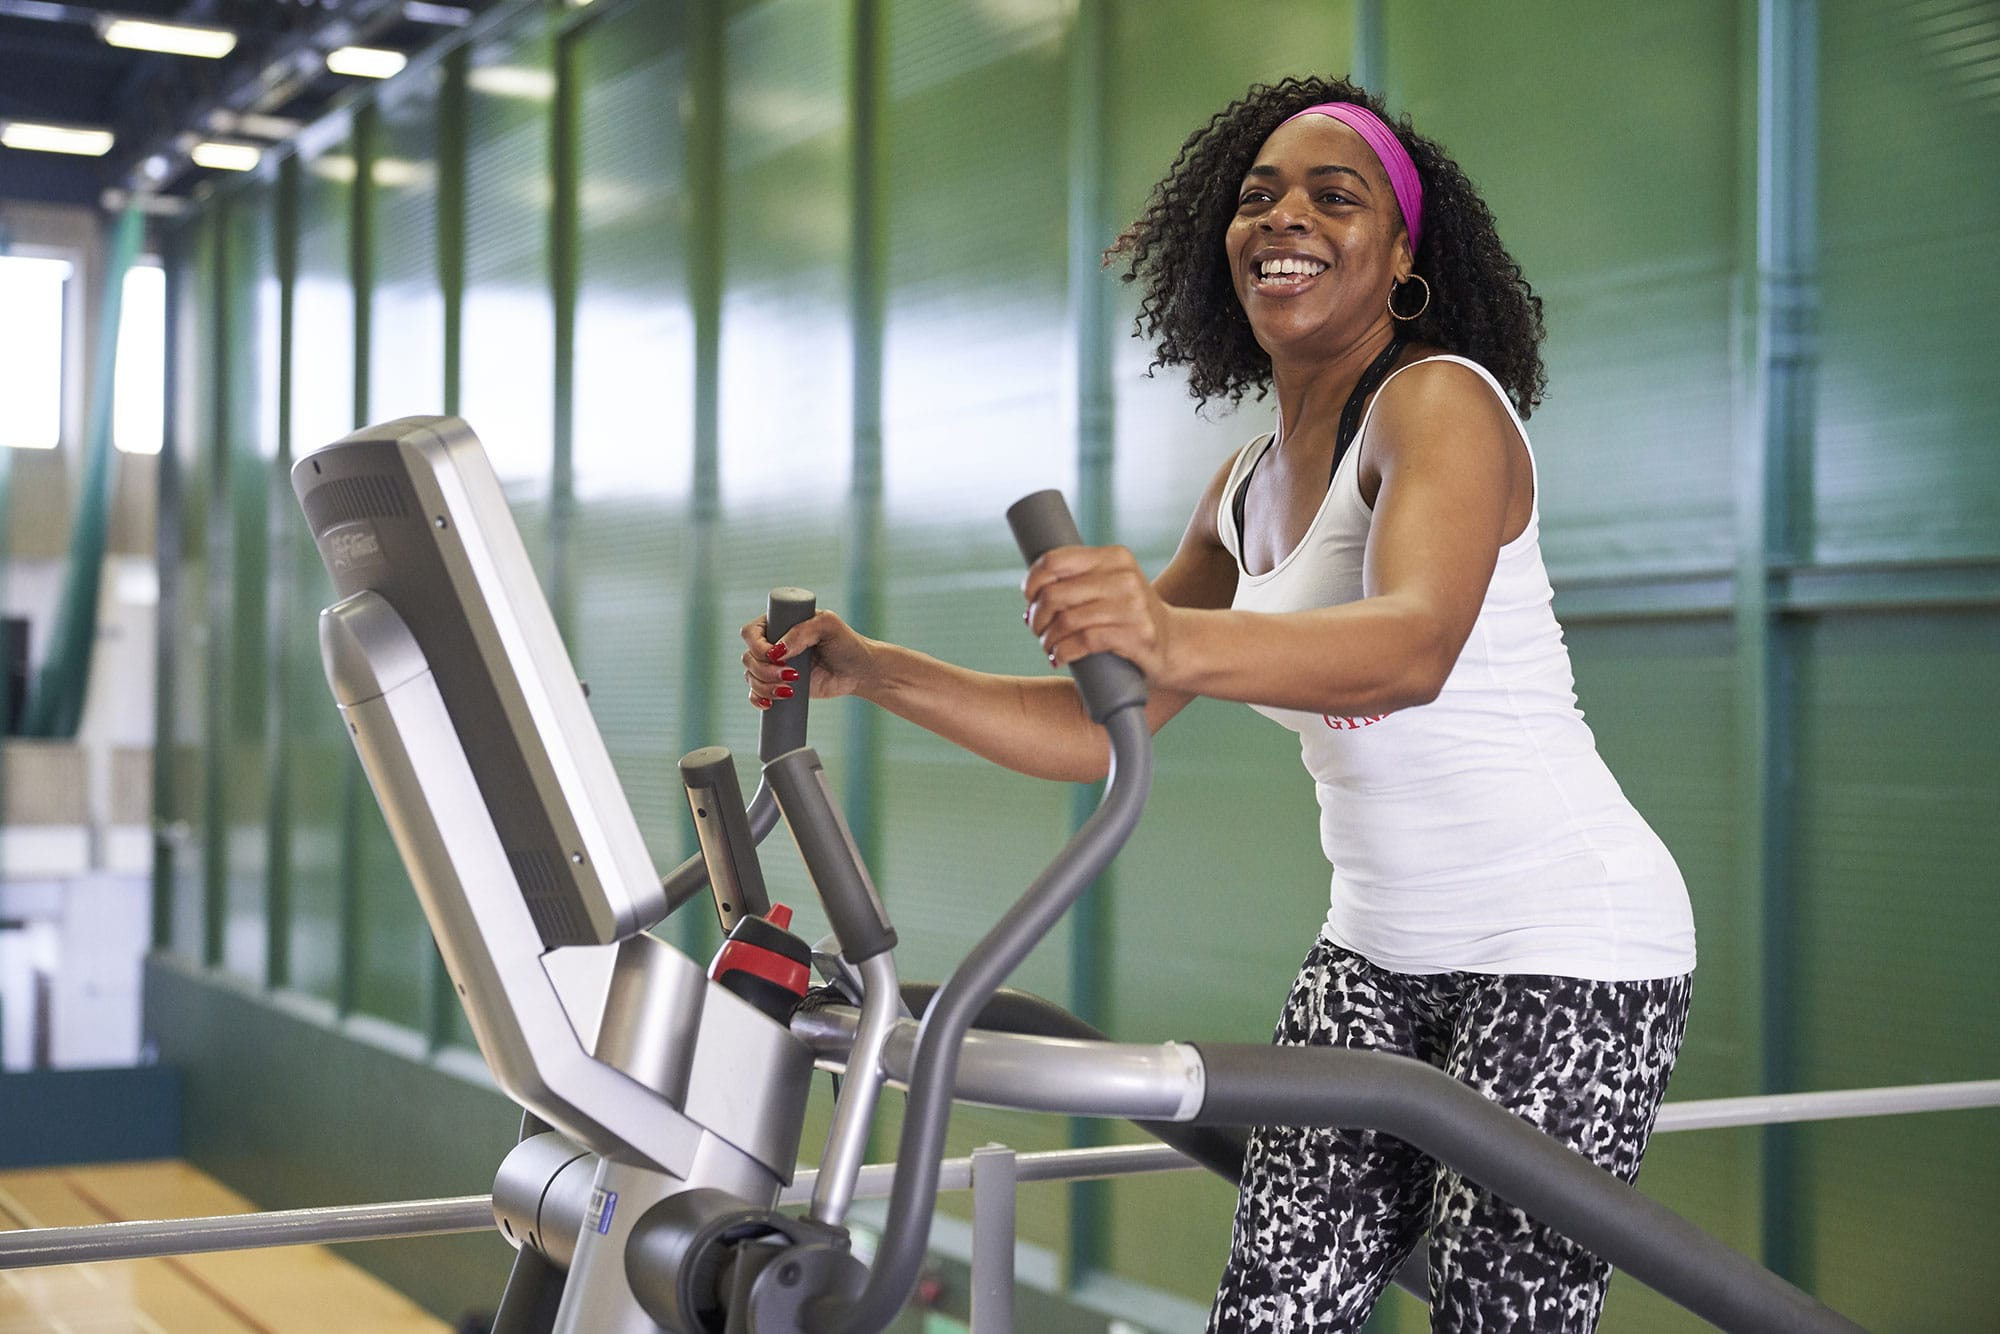 ukactive welcomes reopening of indoor gyms, pools and leisure facilities in Scotland and Northern Ireland this week